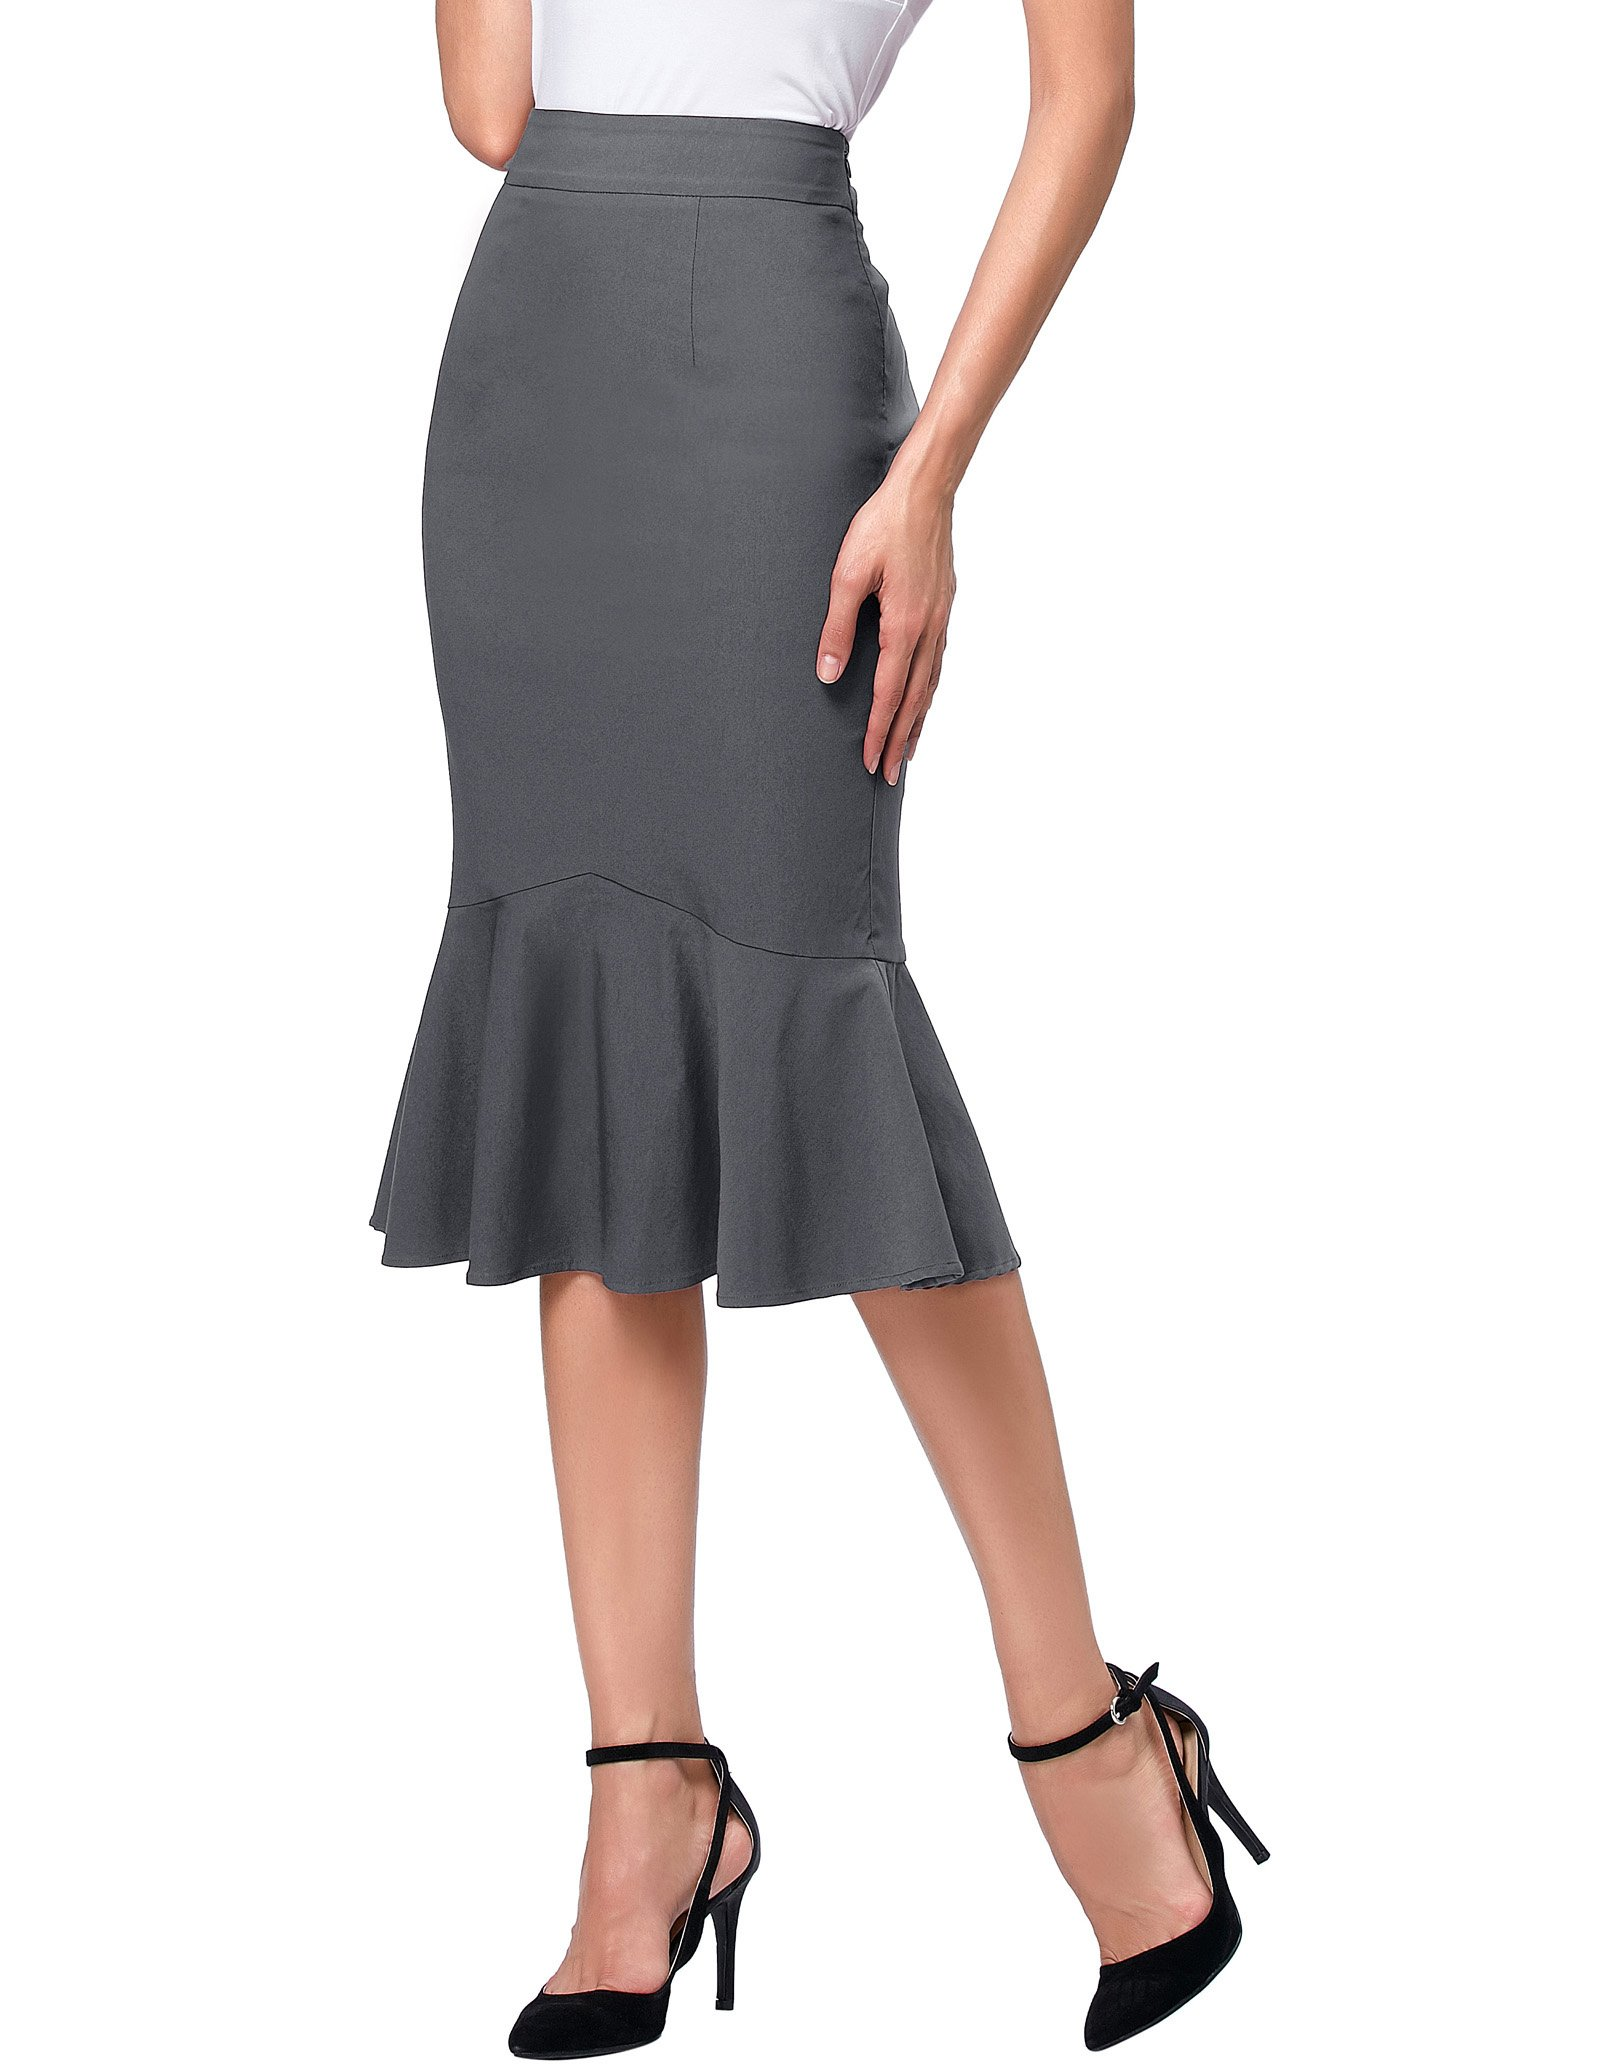 TrendyFashion Mermaid Pencil Office Skirts for Women Work Wear M K241-4